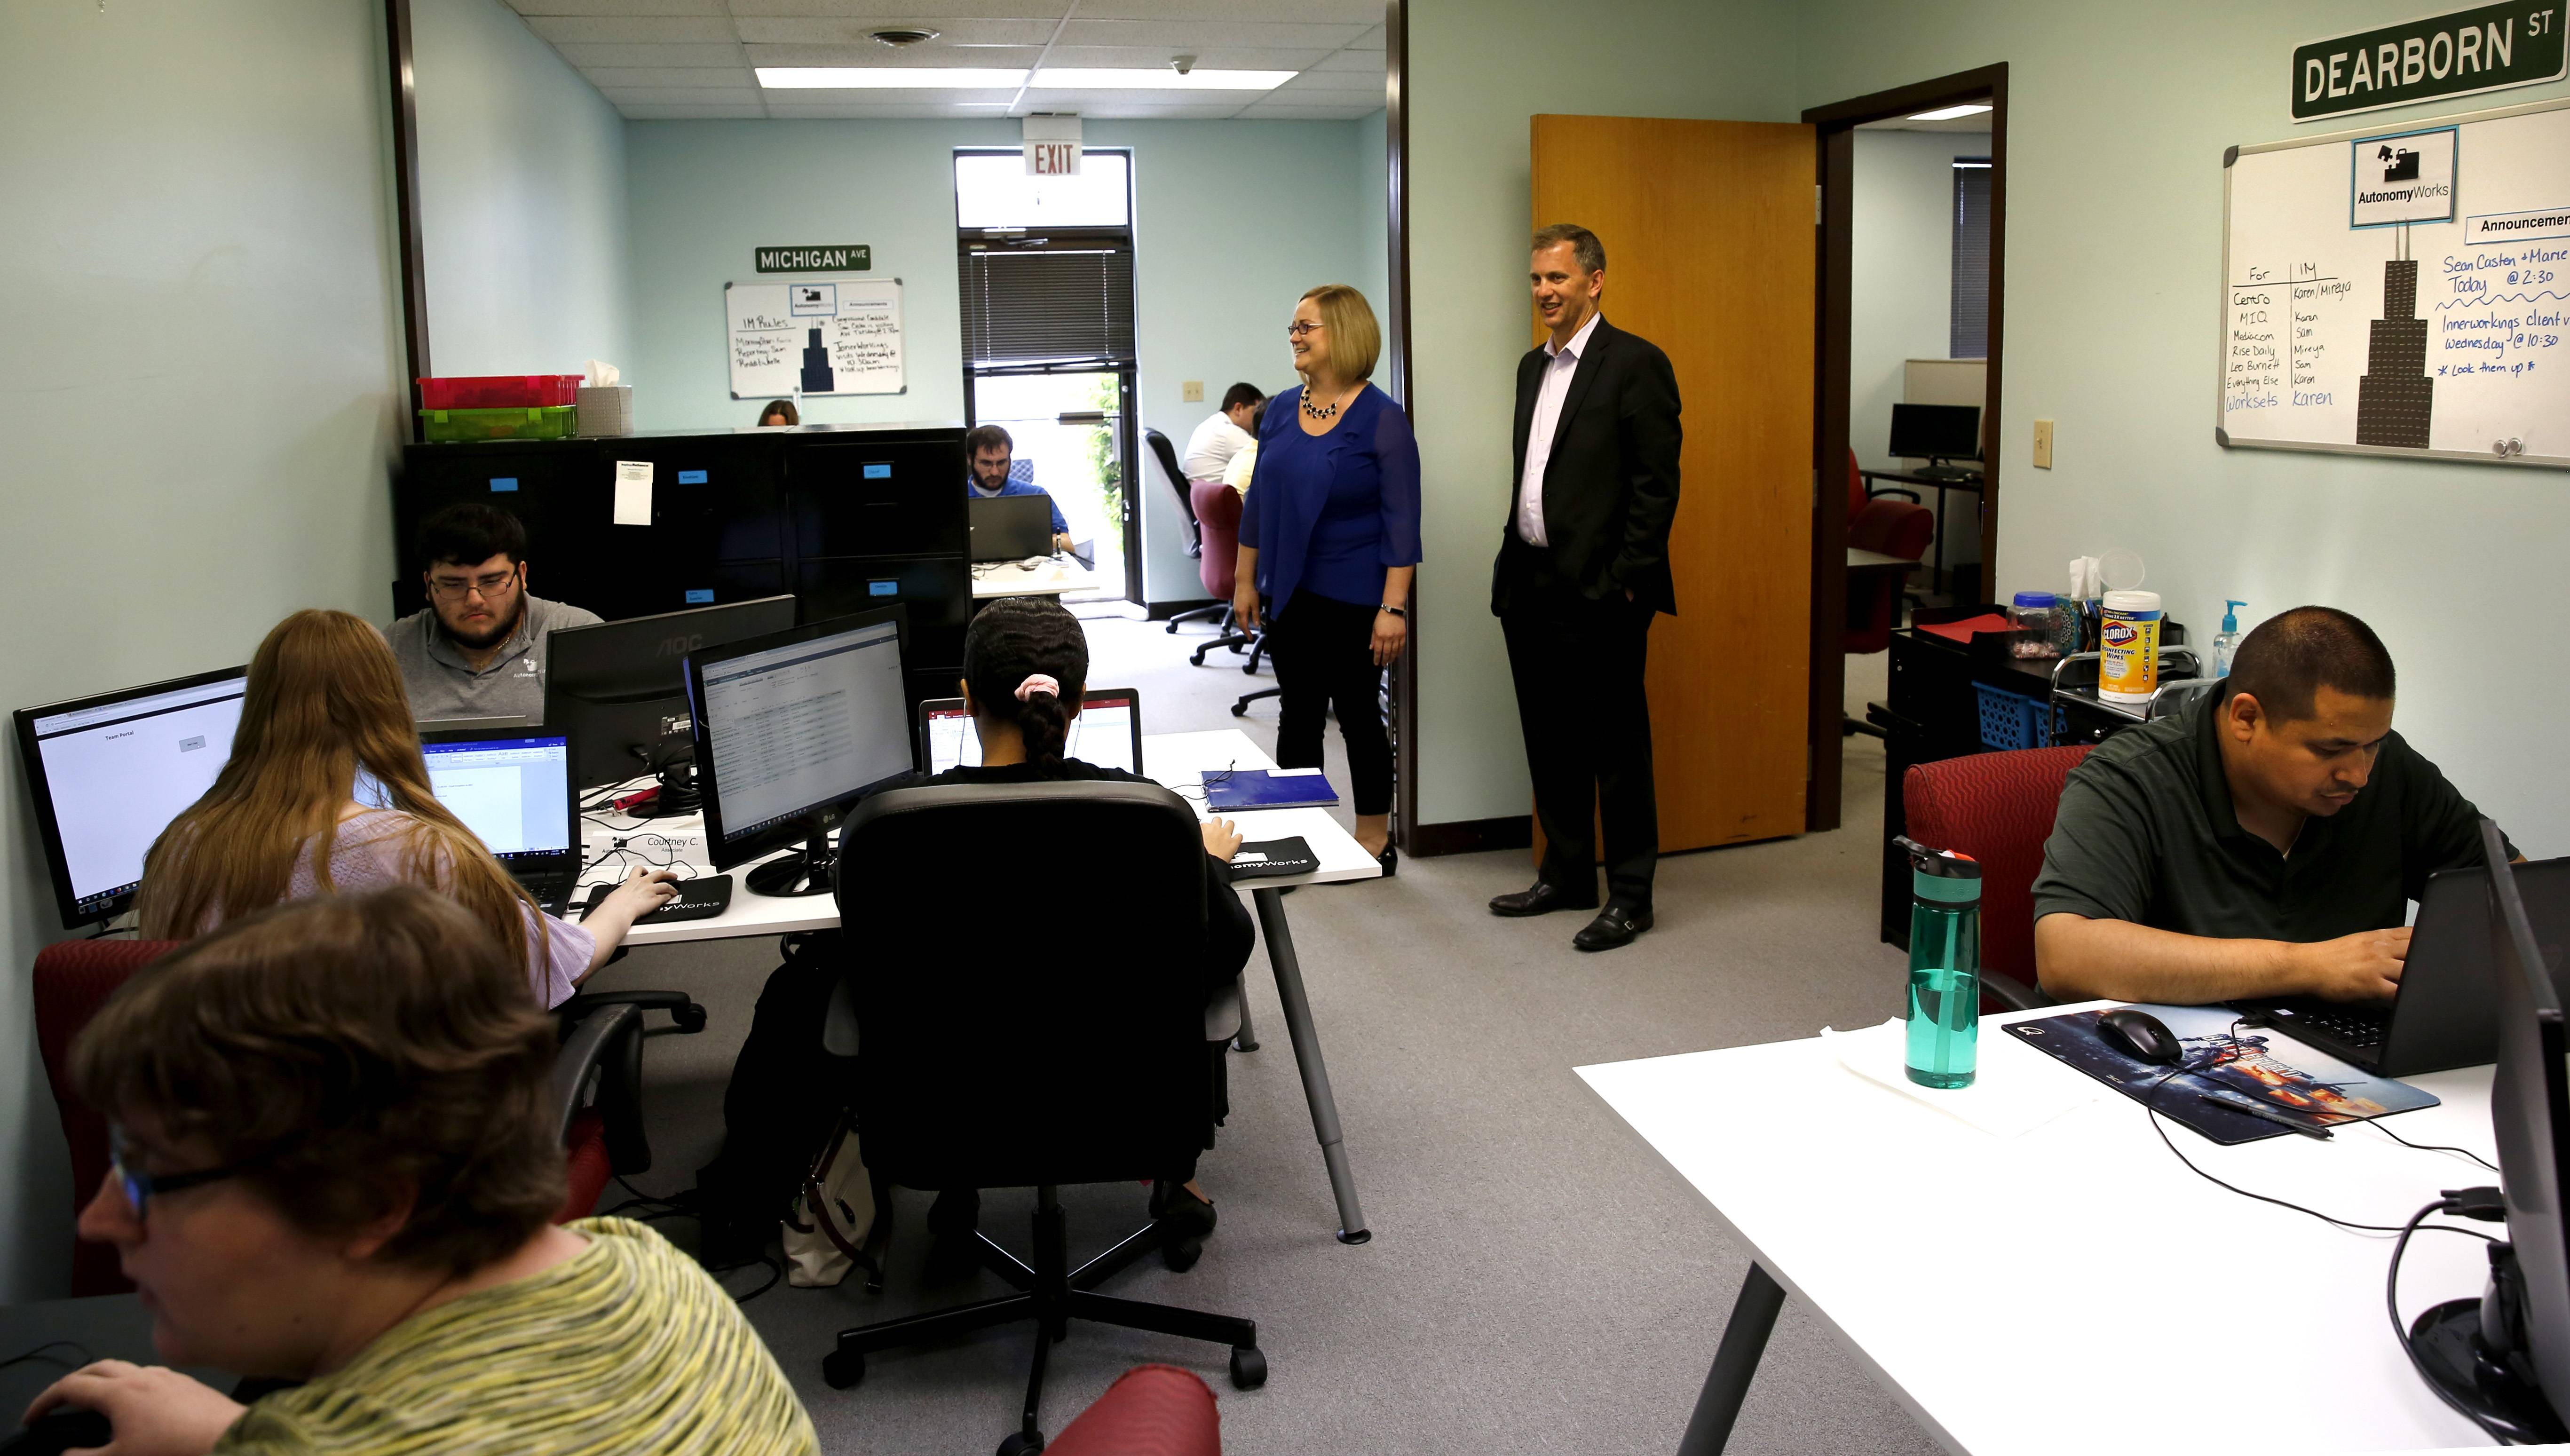 Sean Casten tours the office of AutonomyWorks in Downers Grove, which employs people with mid-functioning autism to do the technical work of digital marketing, advertising and analytics.